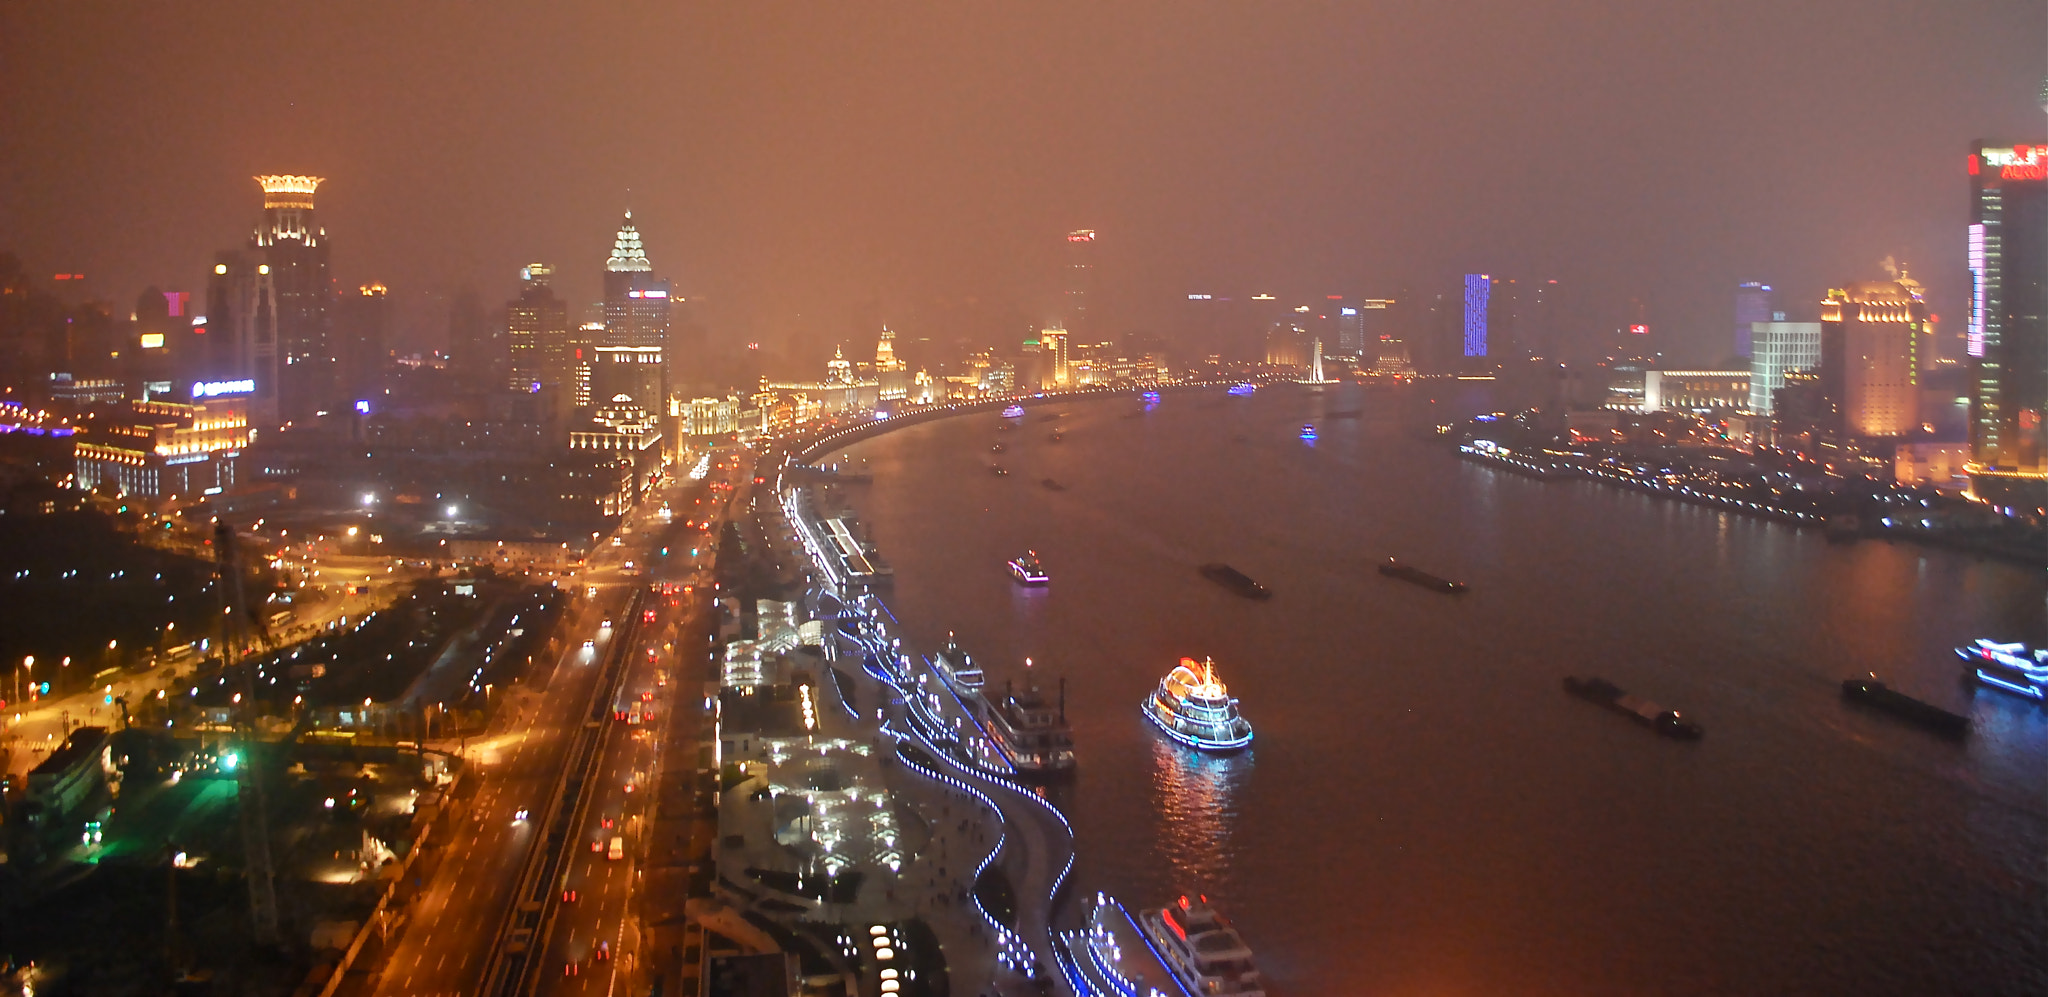 Photograph Night lights in Shanghai by Kirti Satish Manian on 500px